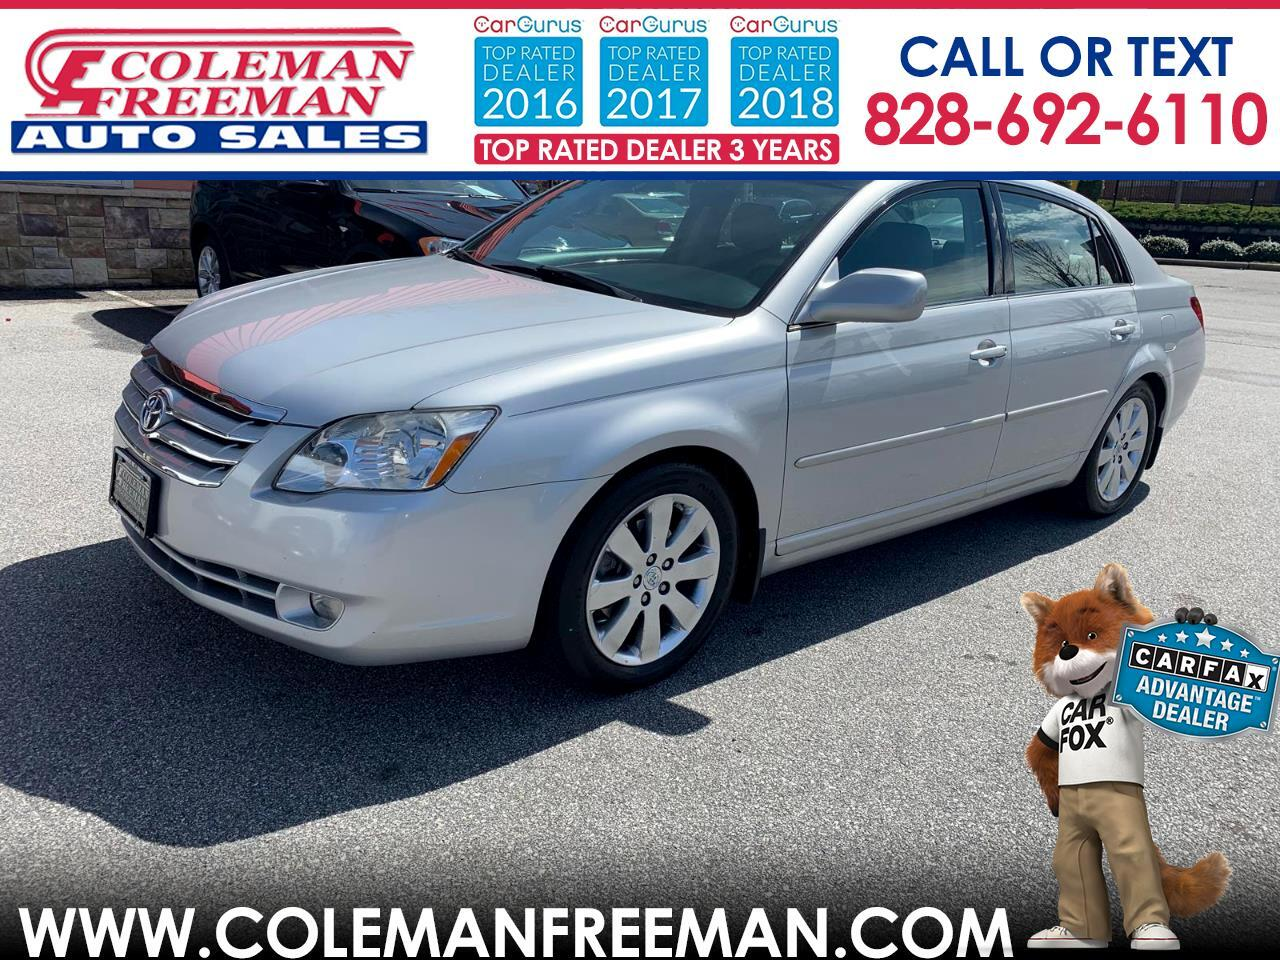 2007 Toyota Avalon 4dr Sdn XLS (Natl)